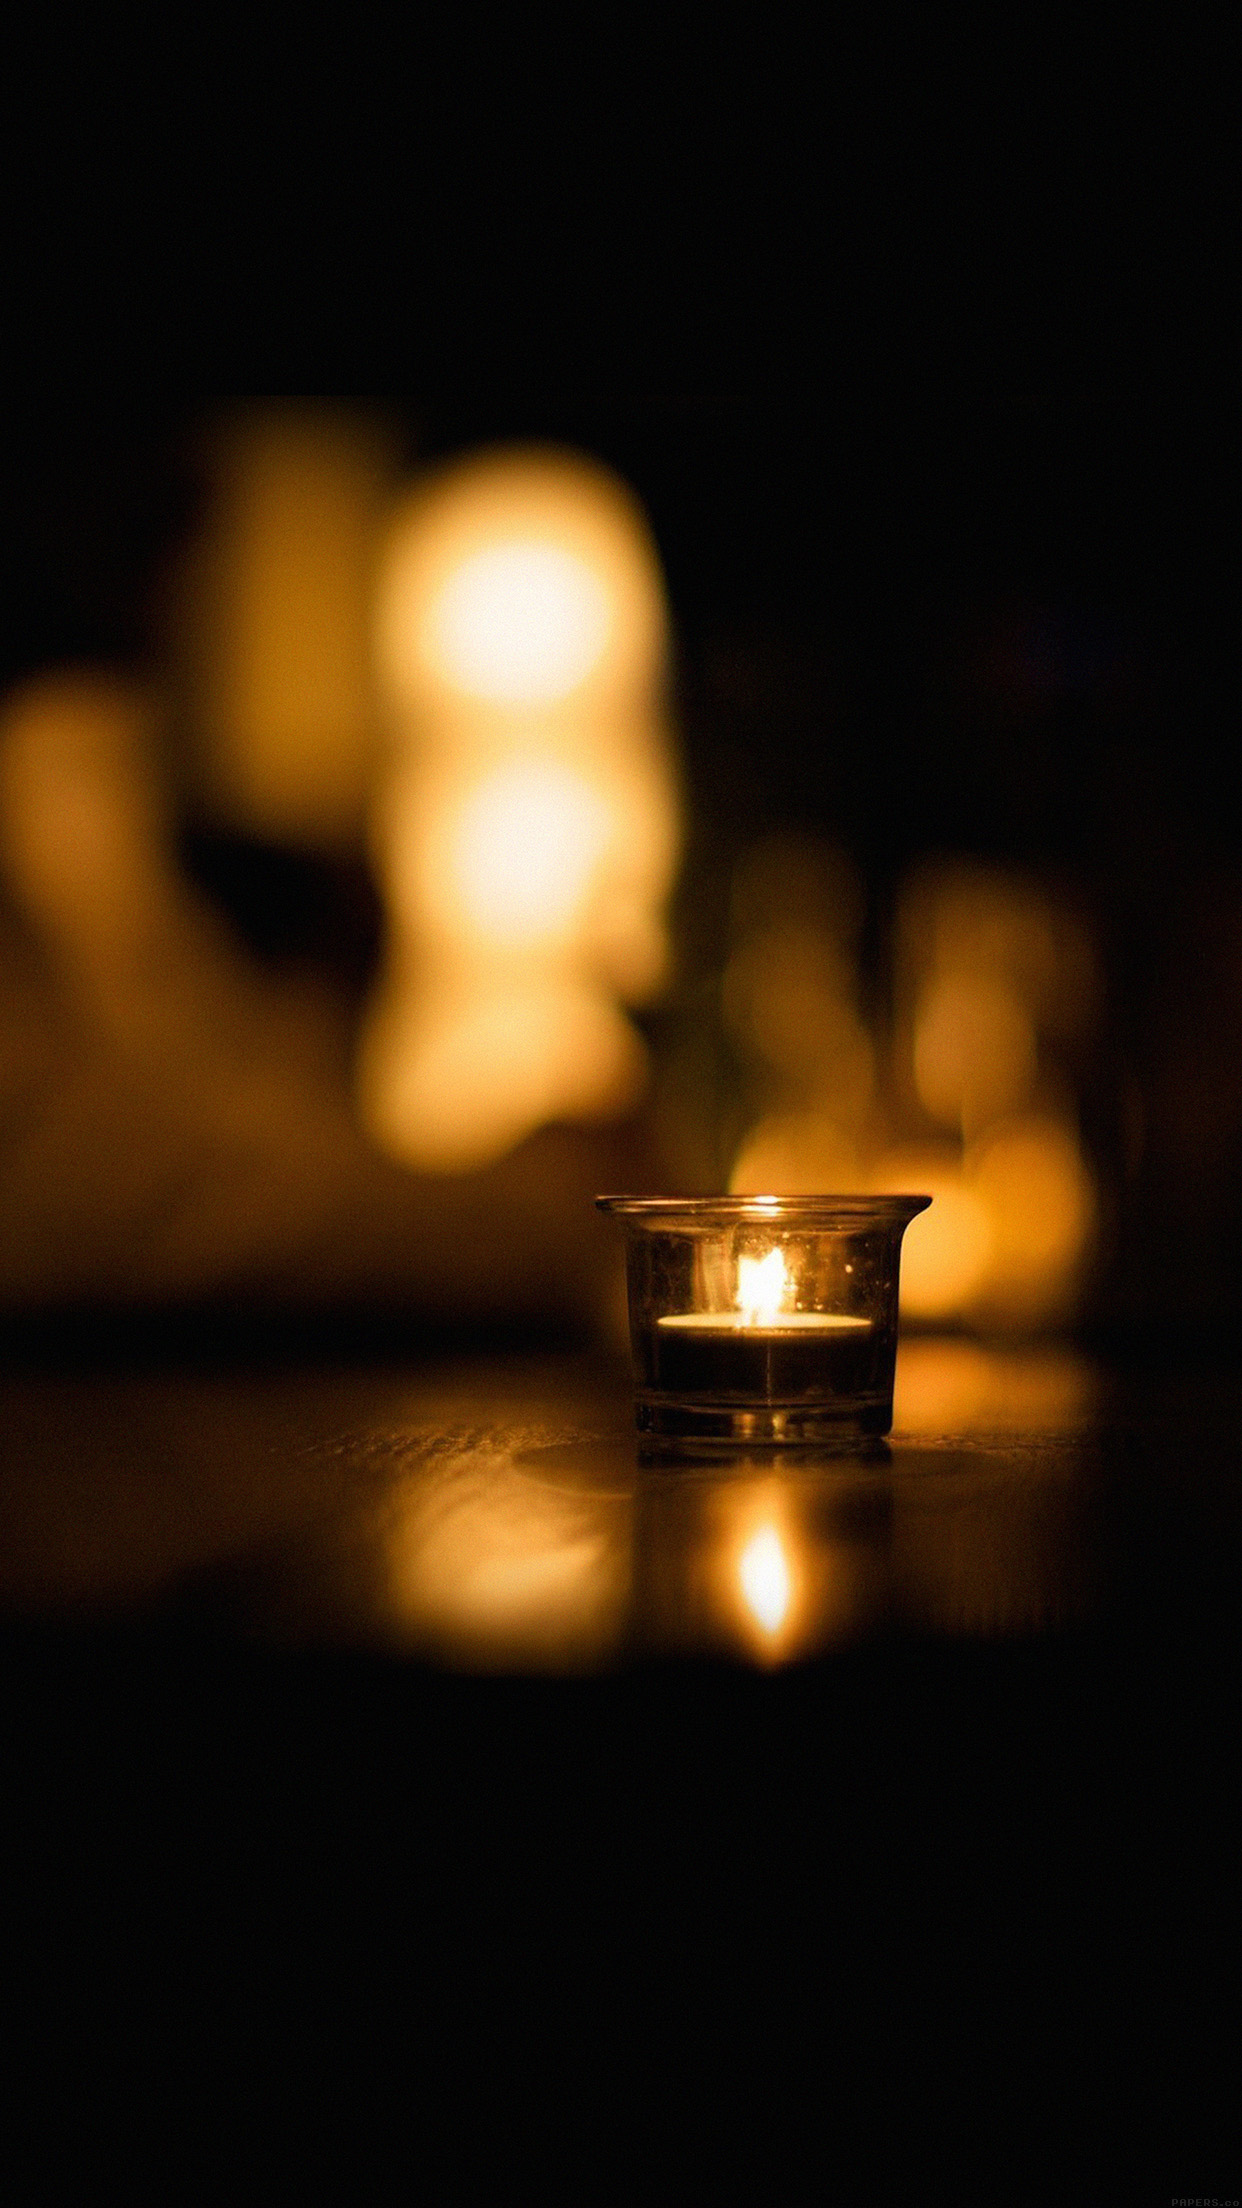 Candle Light Night Romantic 3Wallpapers iPhone Parallax Candle: Light night romantic